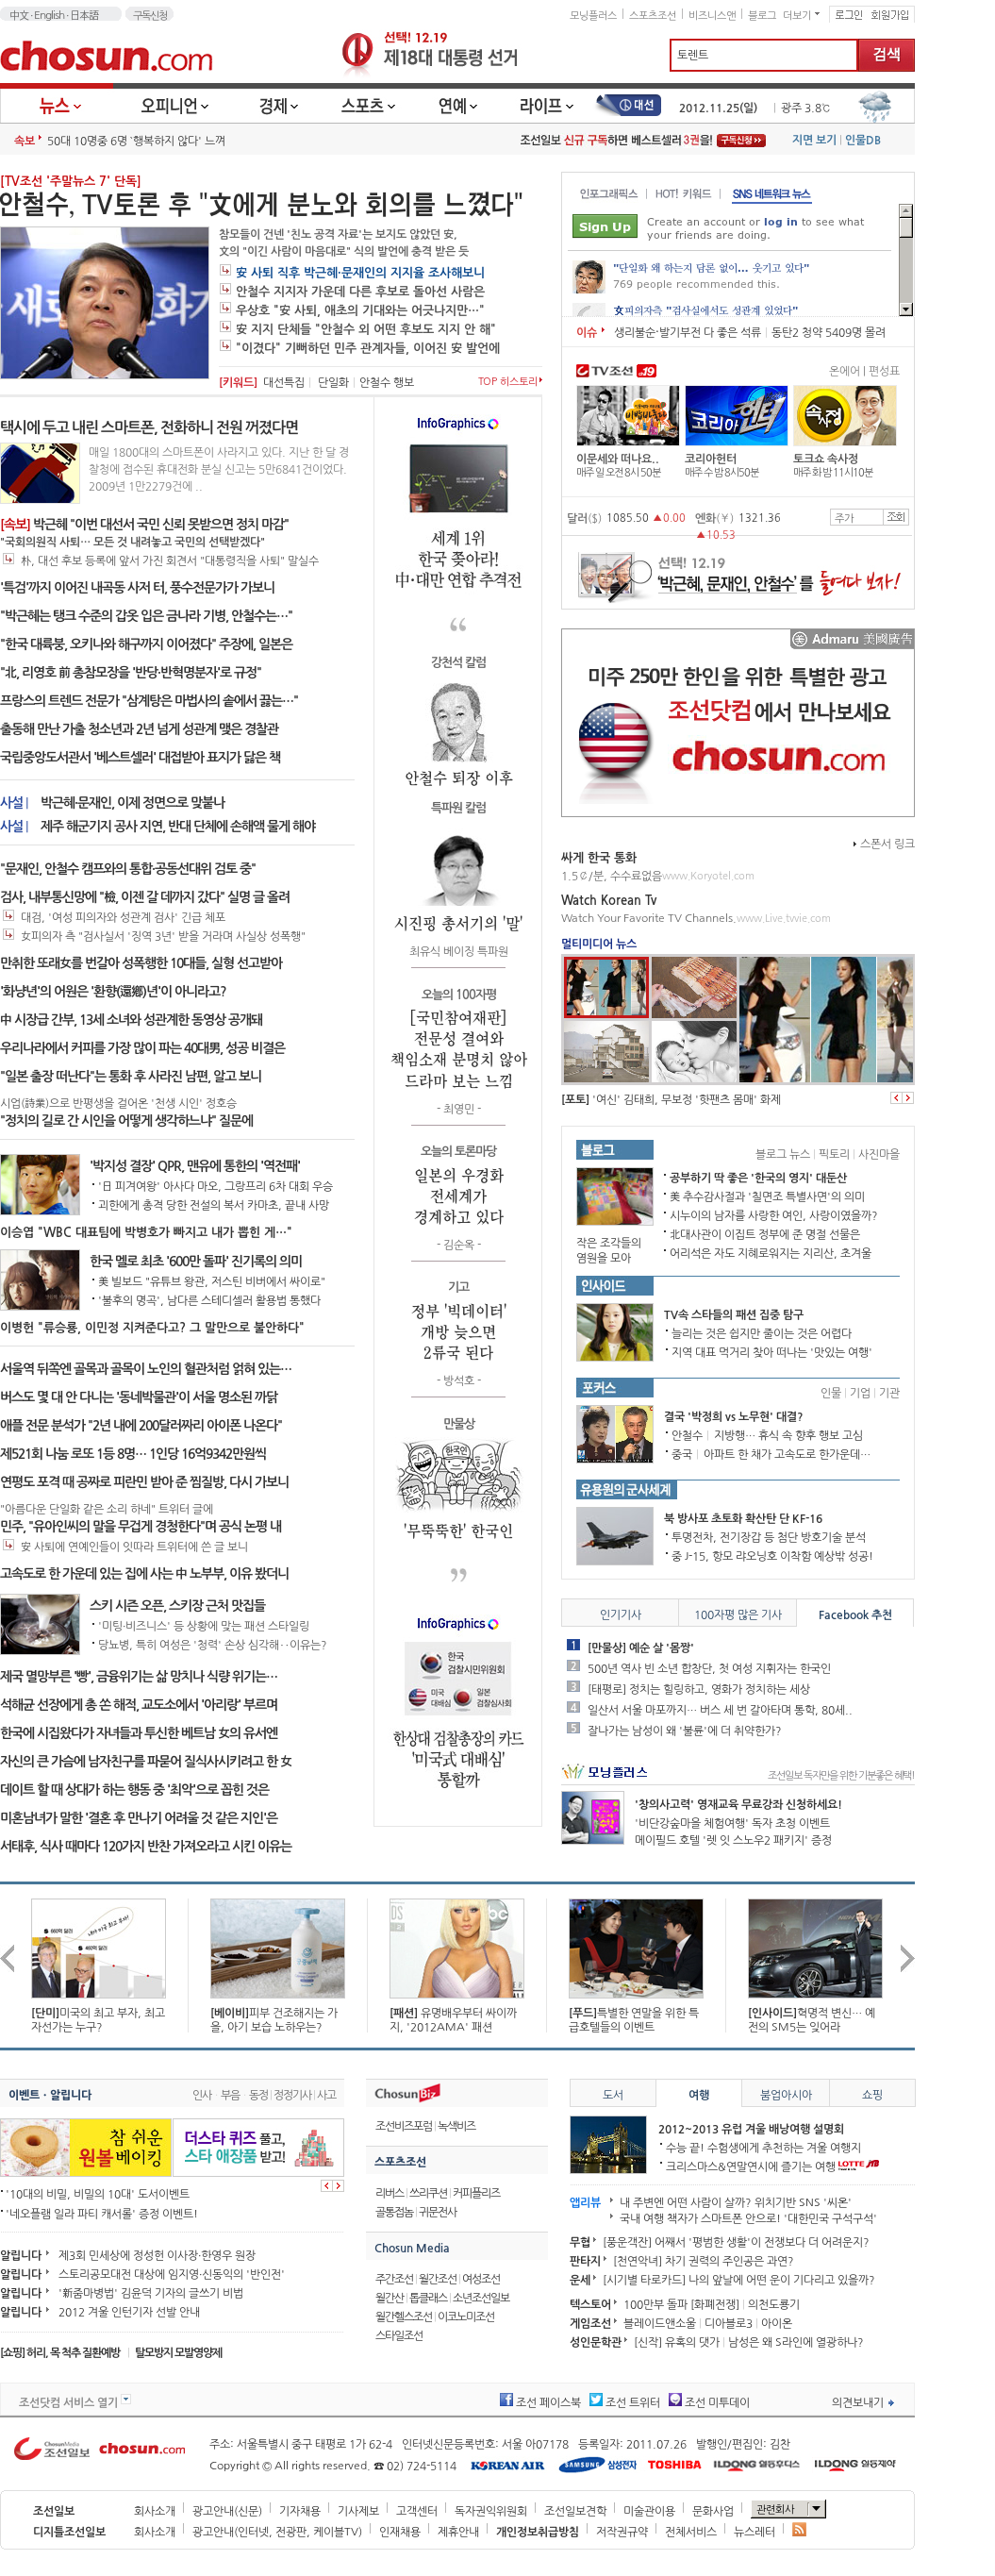 chosun.com at Sunday Nov. 25, 2012, 2:04 a.m. UTC